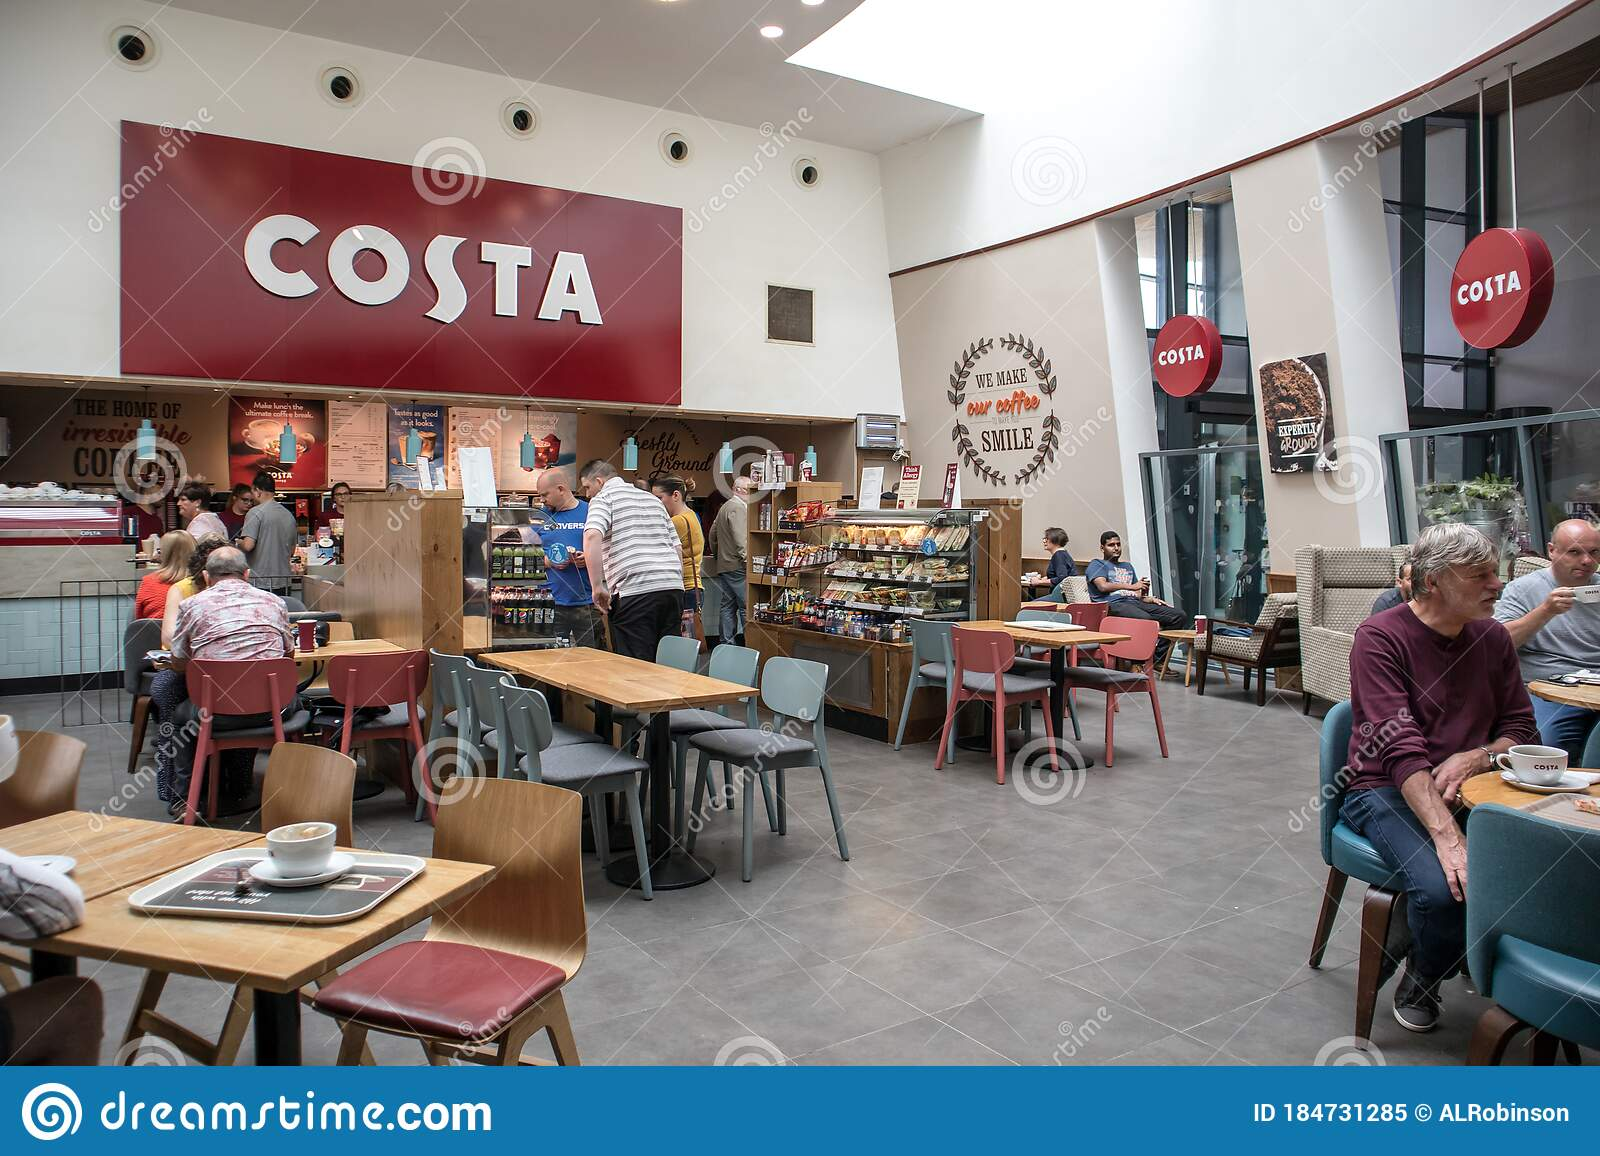 People Inside Costa Coffee Cafe Shopping Mall Centre Service Station Food Court Open Plan Area Editorial Image Image Of Dinner Fast 184731285